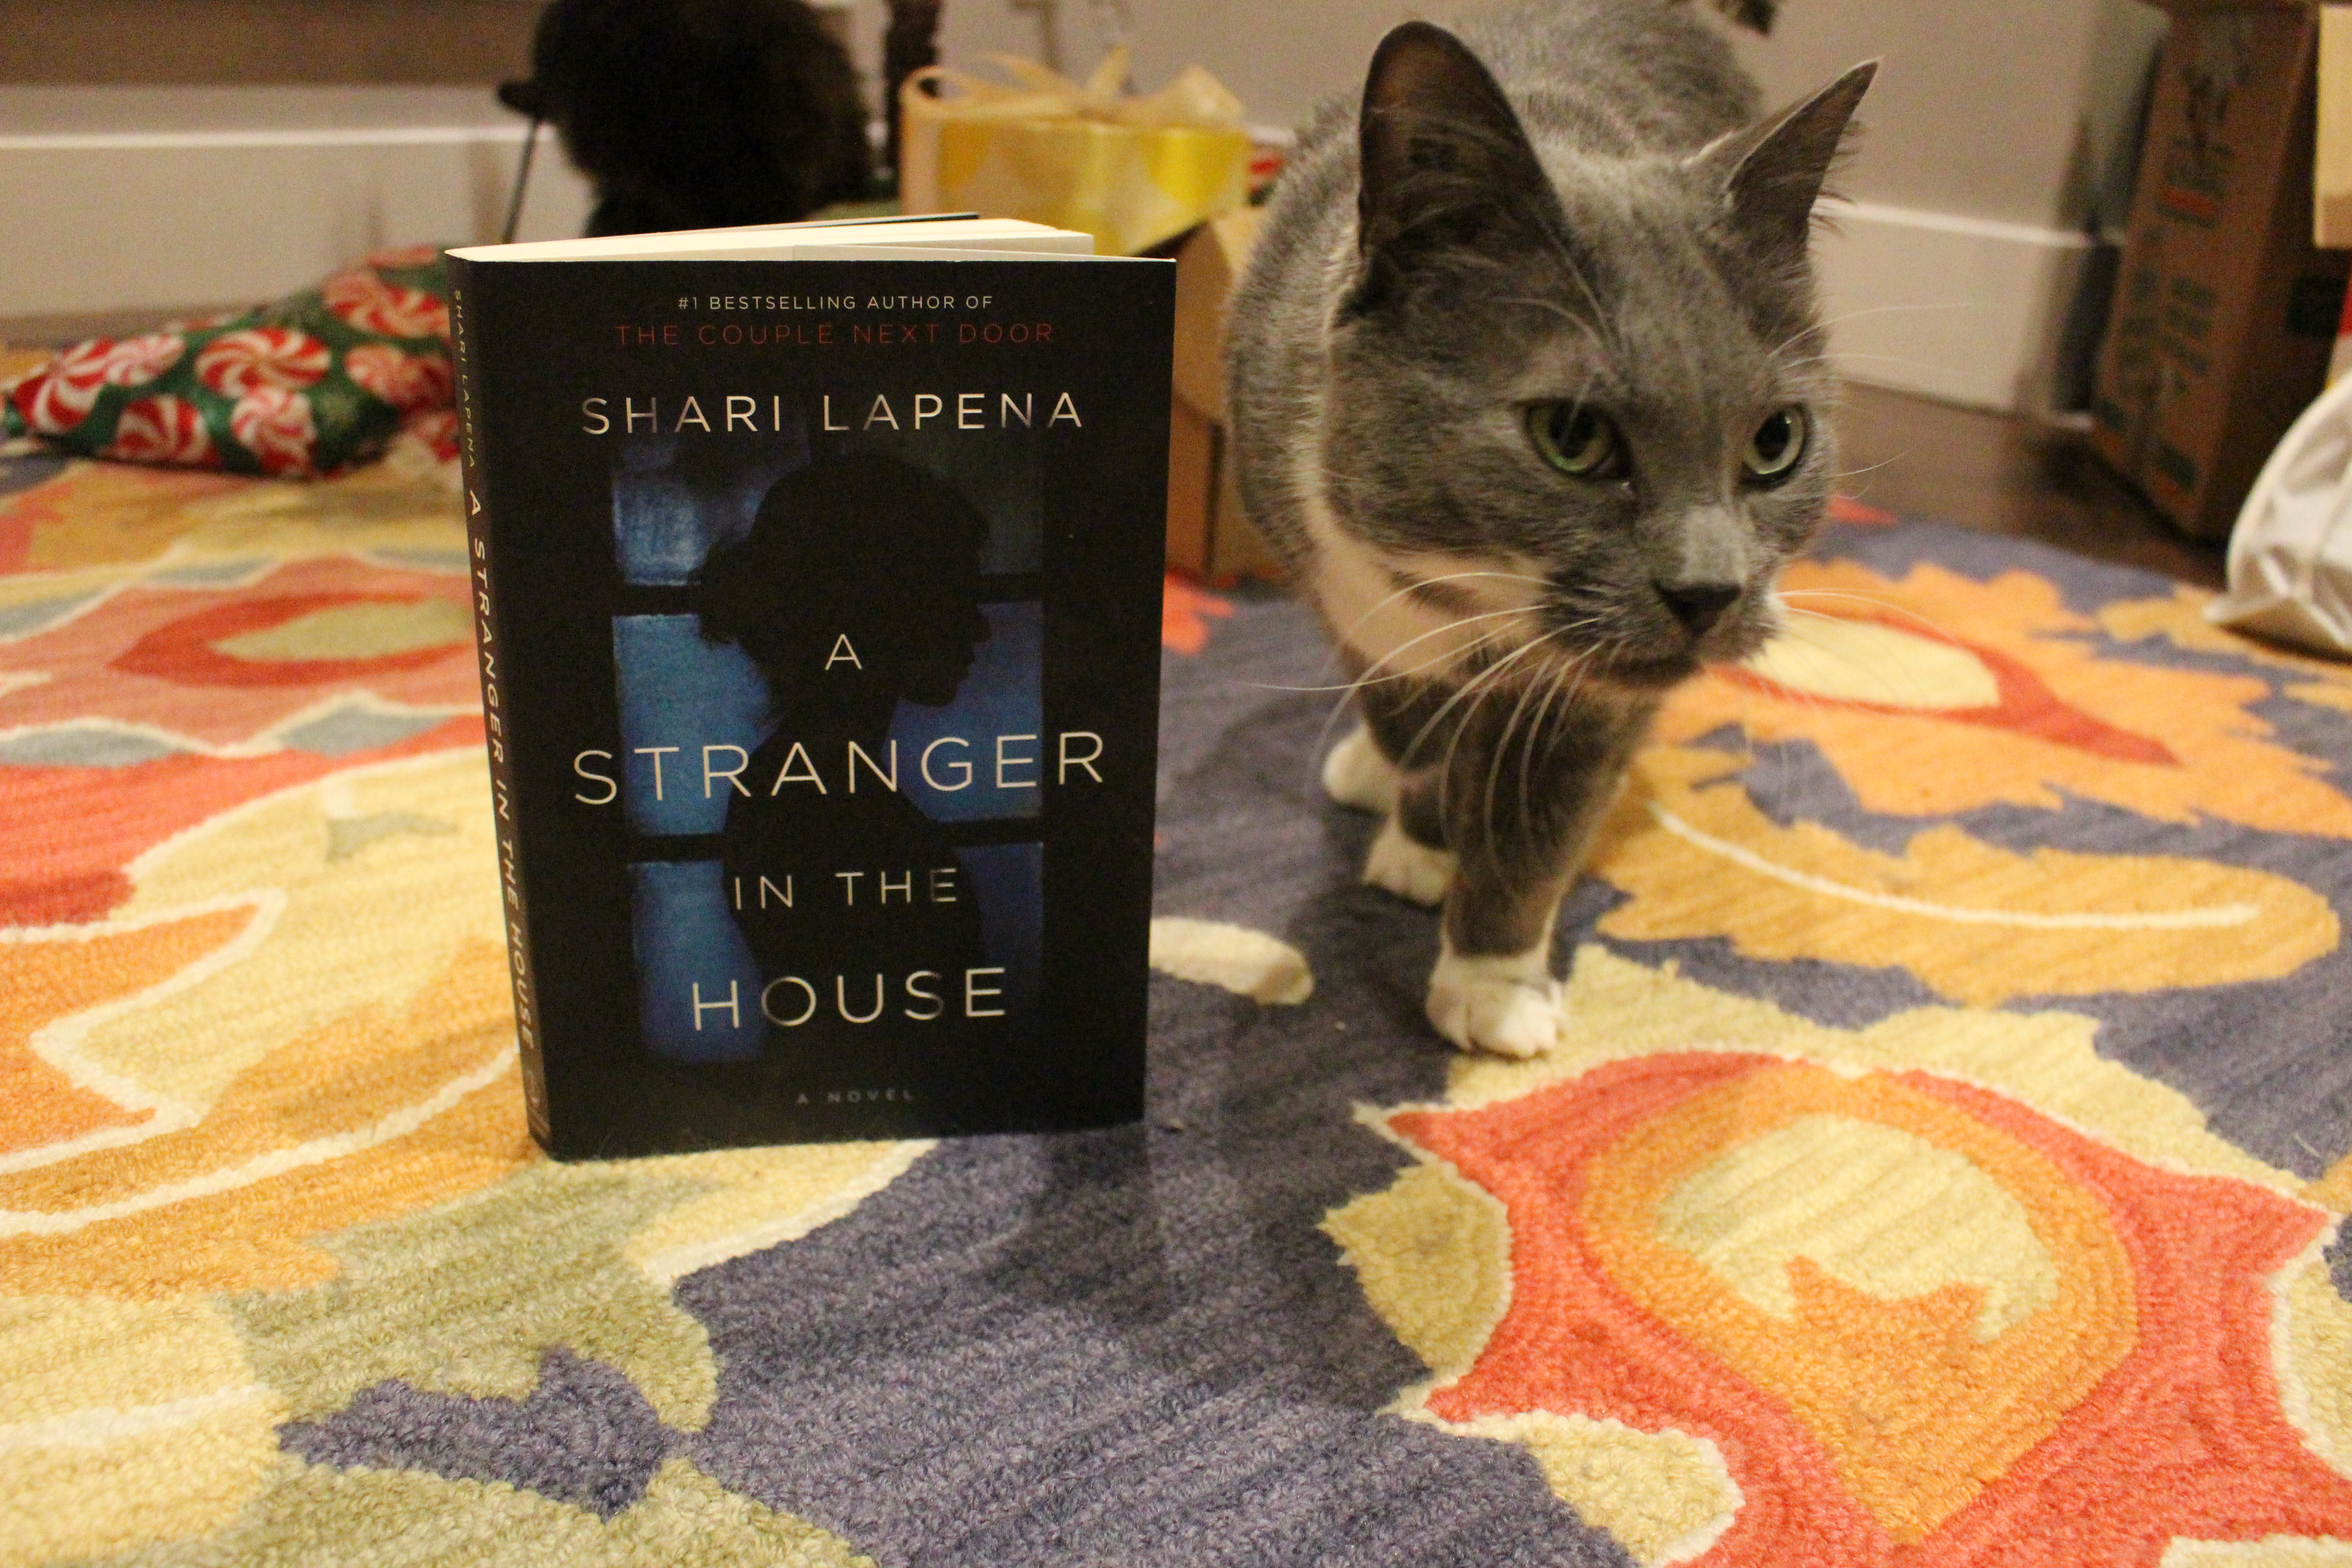 Book Review: A Stranger in the House by Shari Lapena